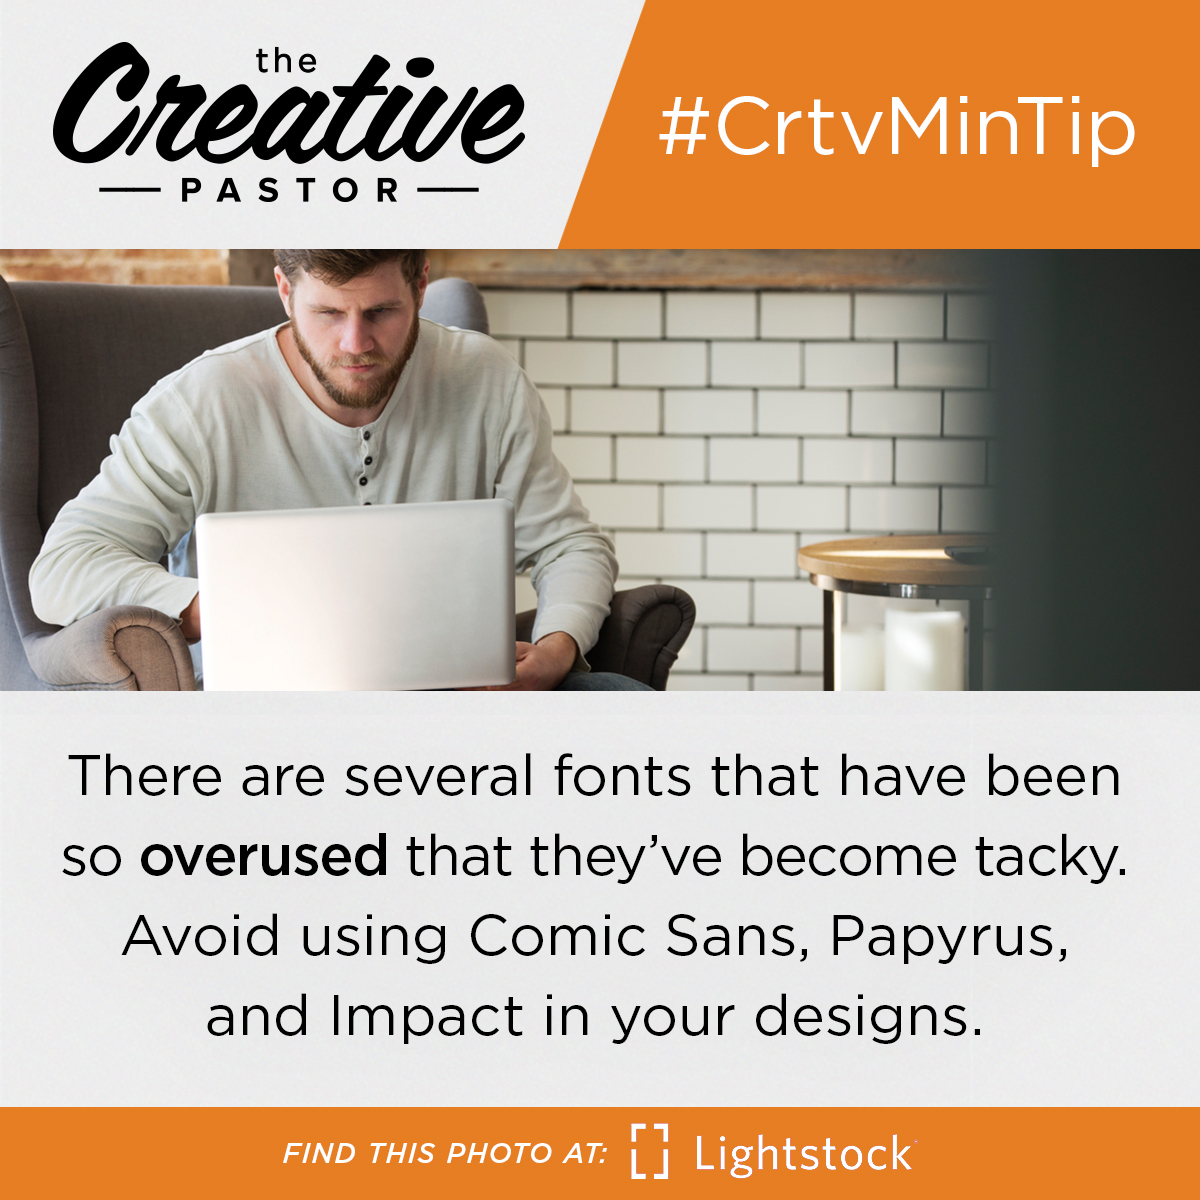 There are several fonts that have been so overused that they've become tacky. Avoid using Comic Sans, Papyrus, and Impact in your designs.